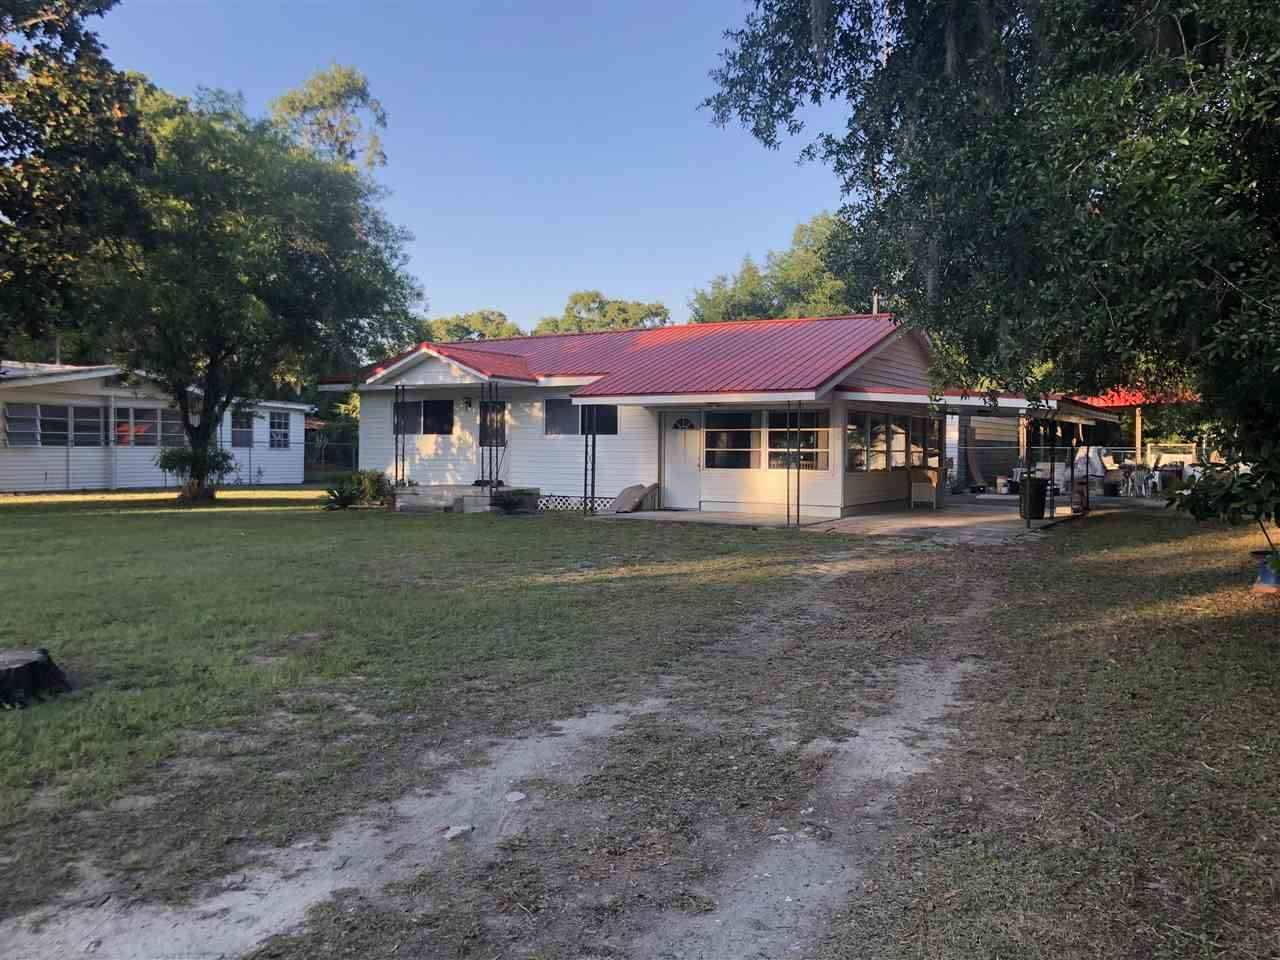 216 SE 12th Street, Steinhatchee, FL 32359 - MLS#: 306398